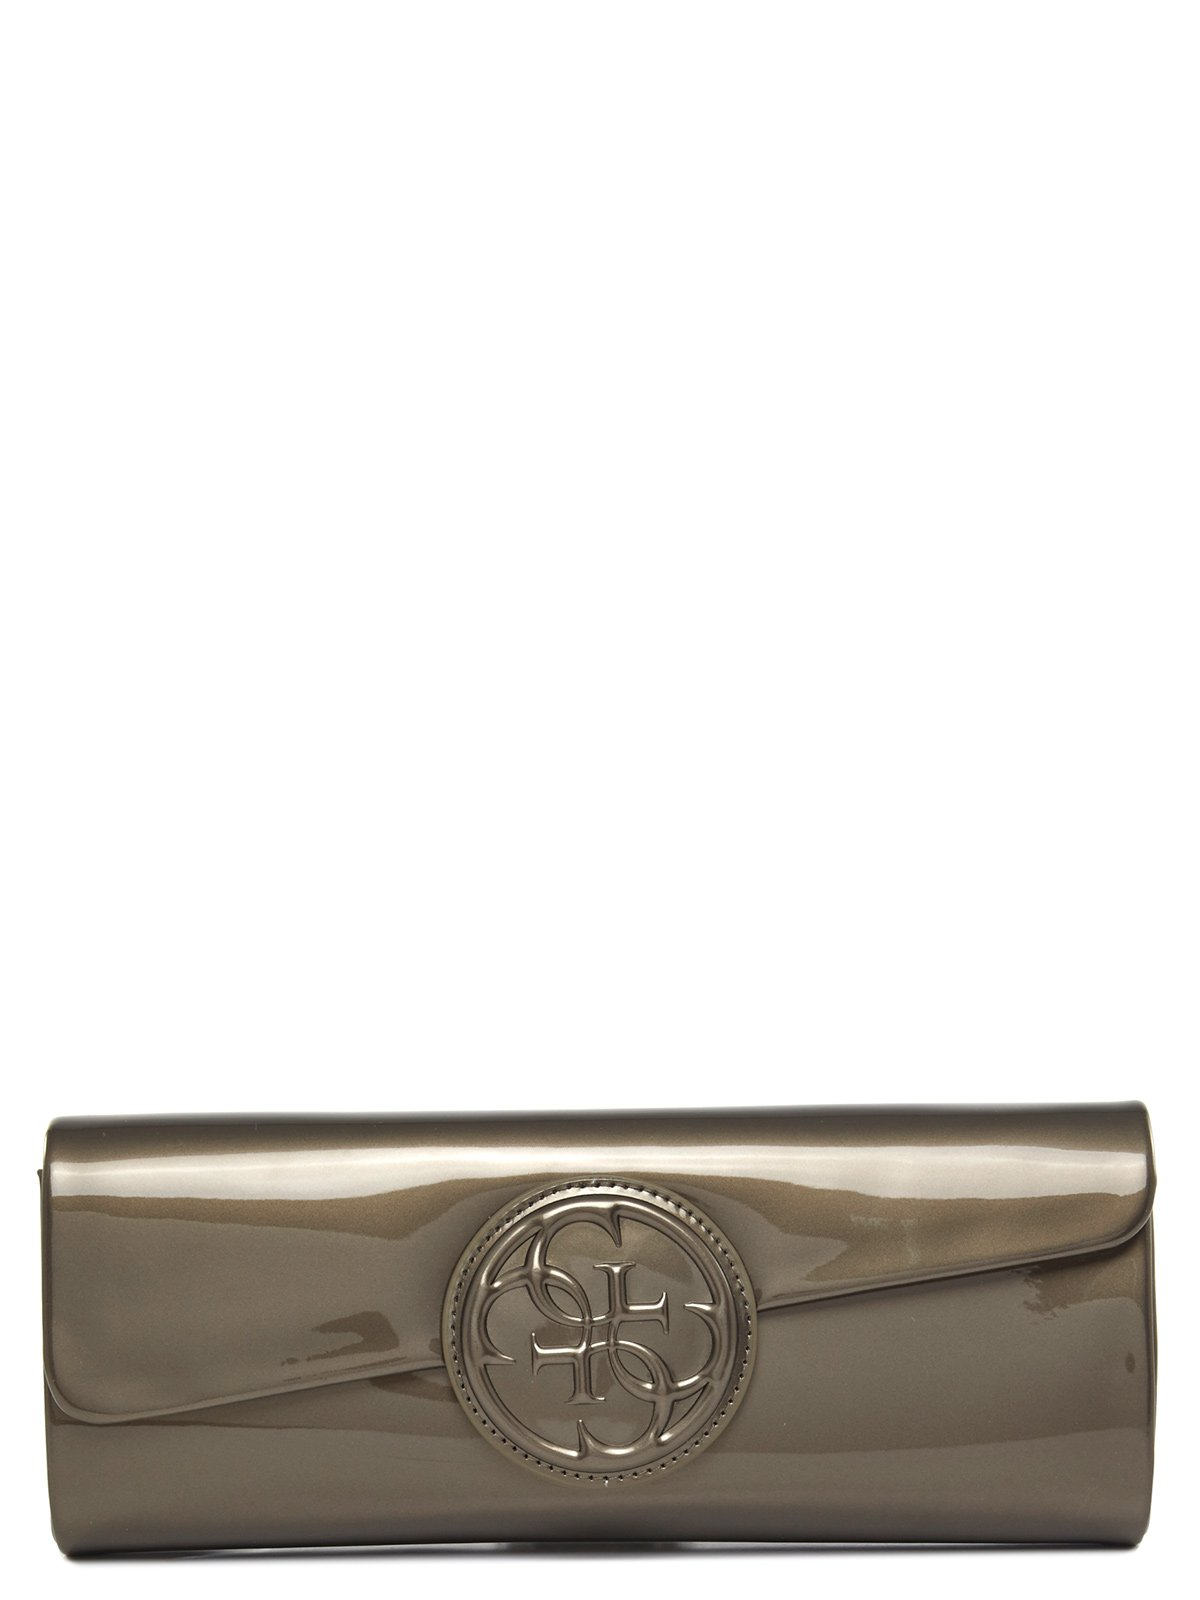 GUESS CLUTCH bronze PU